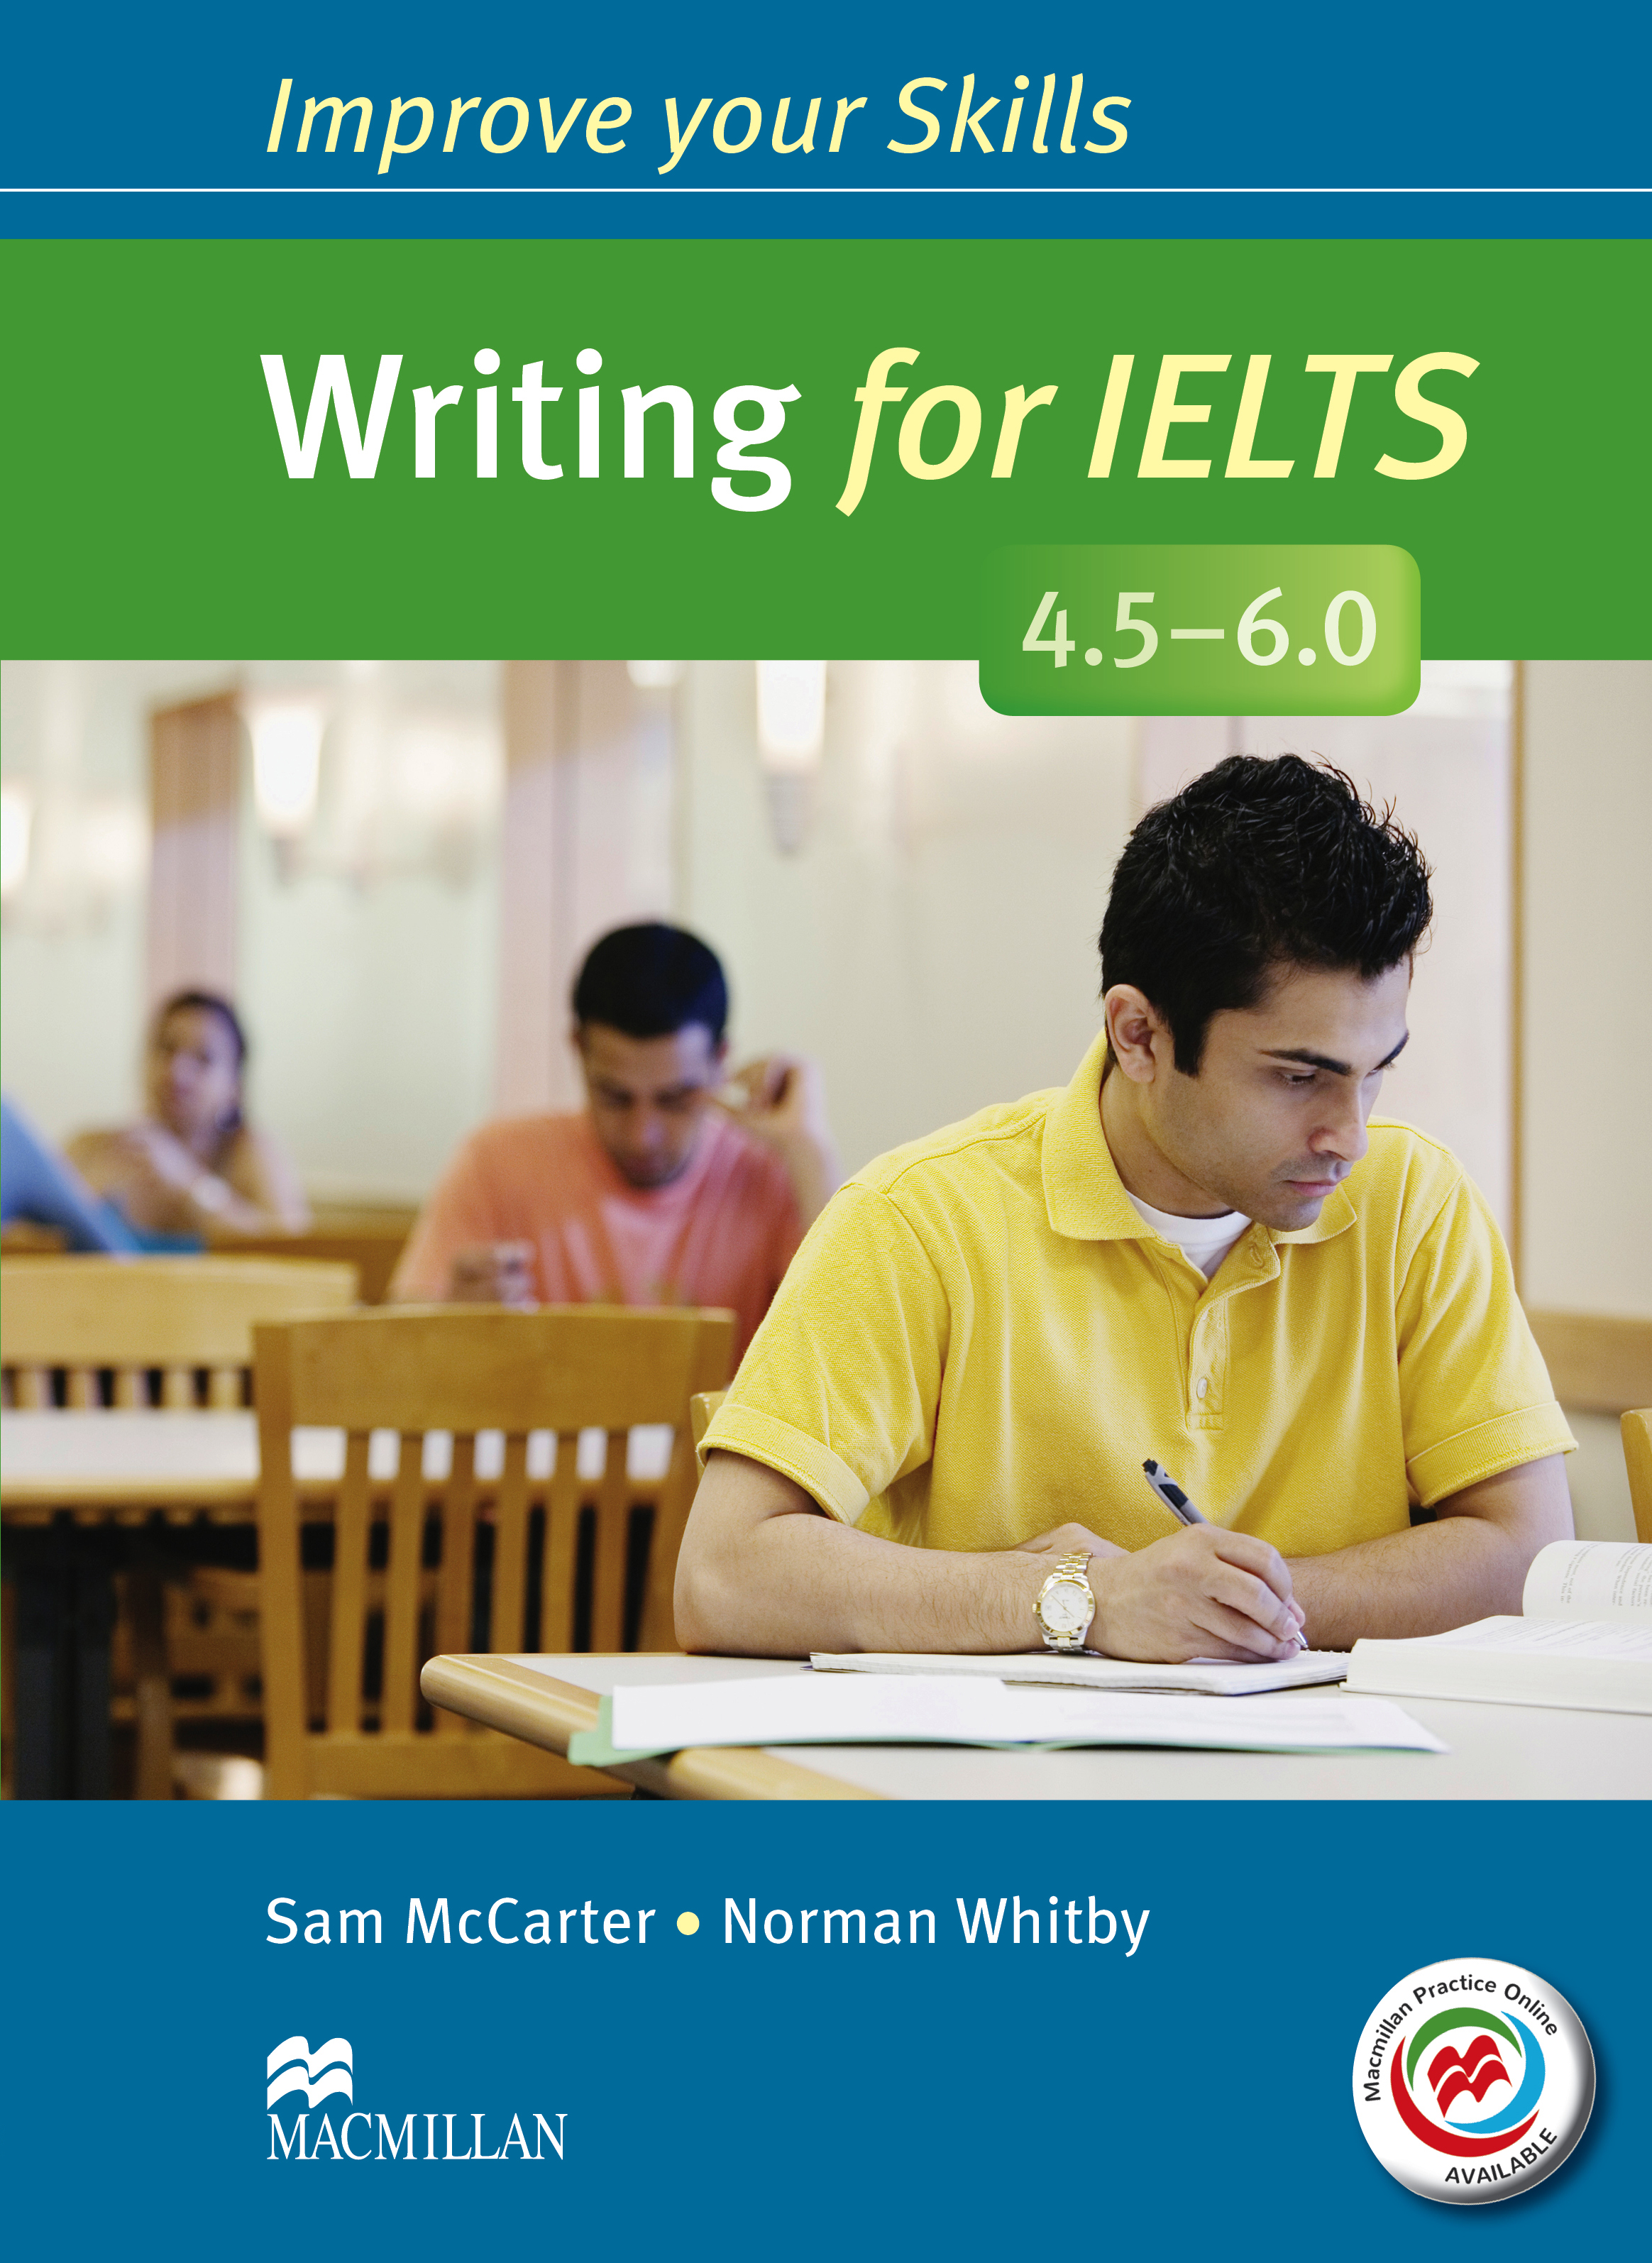 Improve Your Skills: Writing for IELTS 4.5-6.0 Student